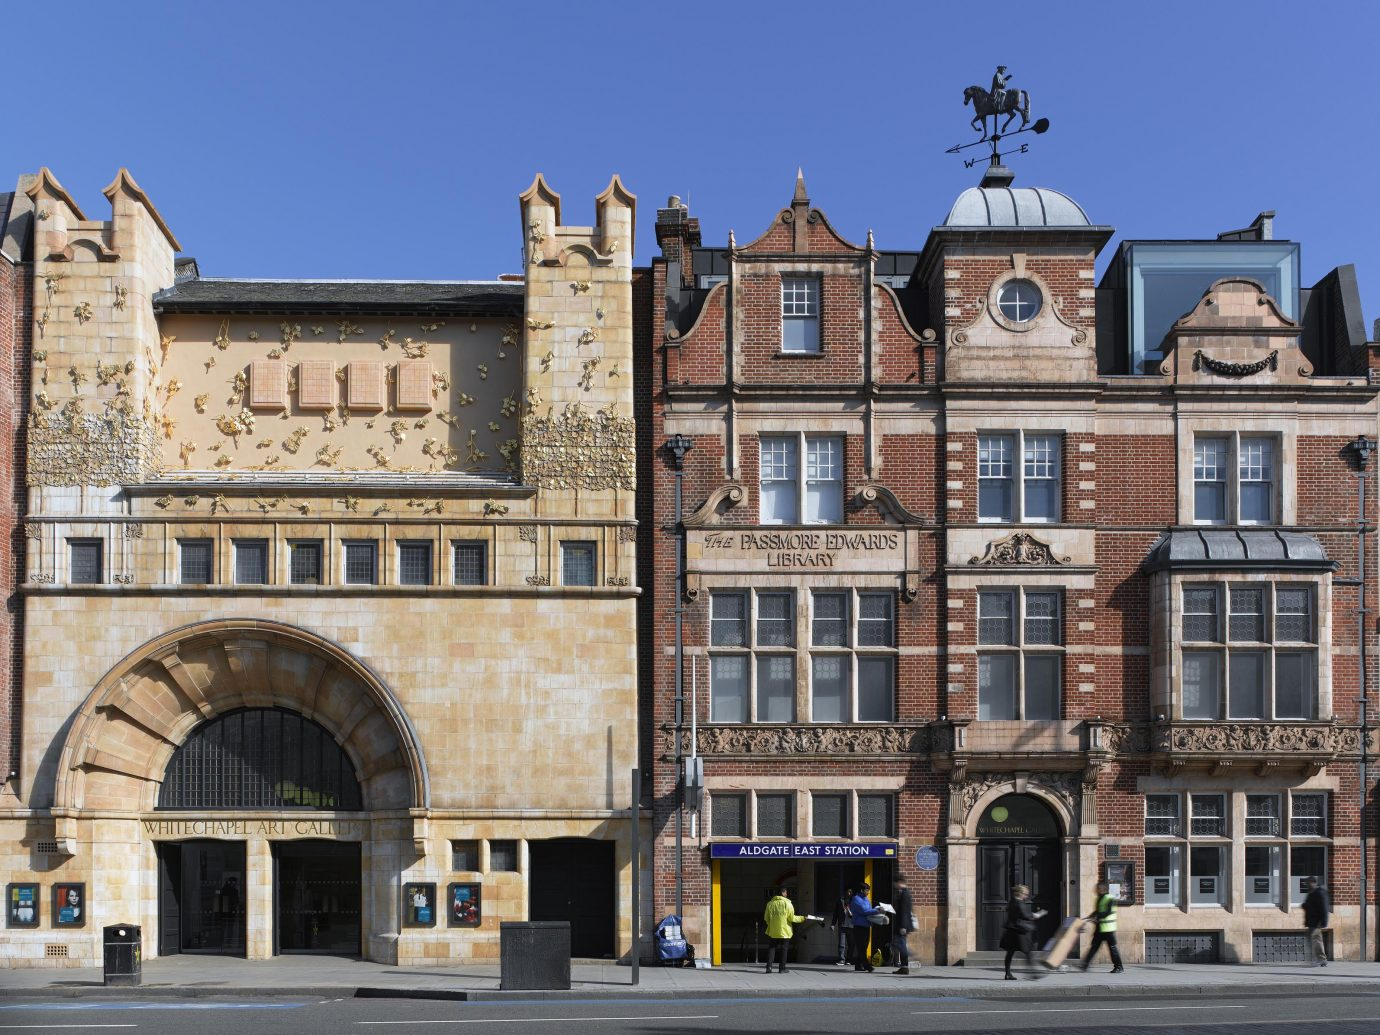 Whitechapel Gallery facade